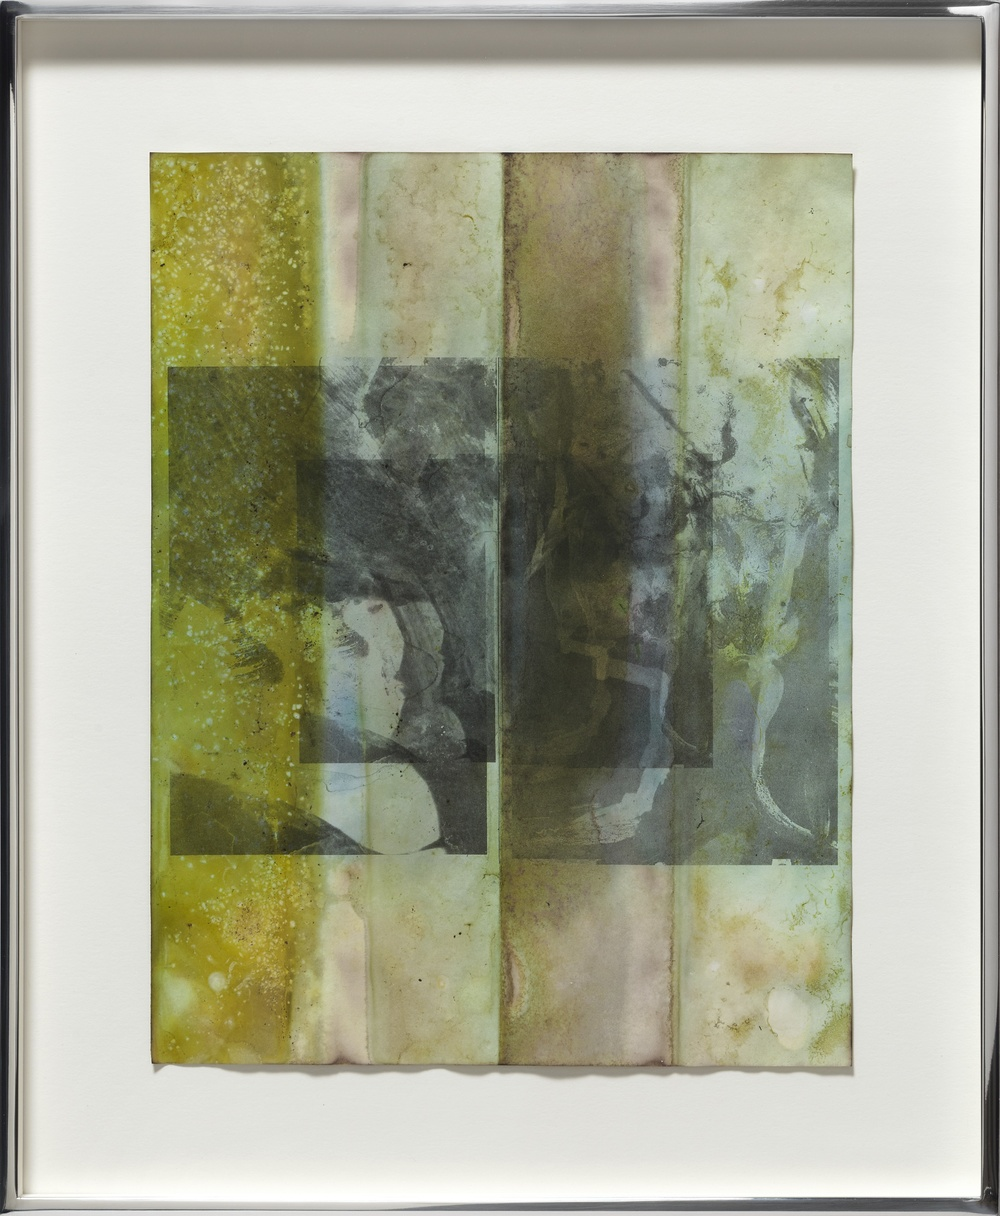 Untitled 2013 Inks and mixed media on dyed inkjet print  36.8 x 30.4 cm / 14.5 x 12 in framed